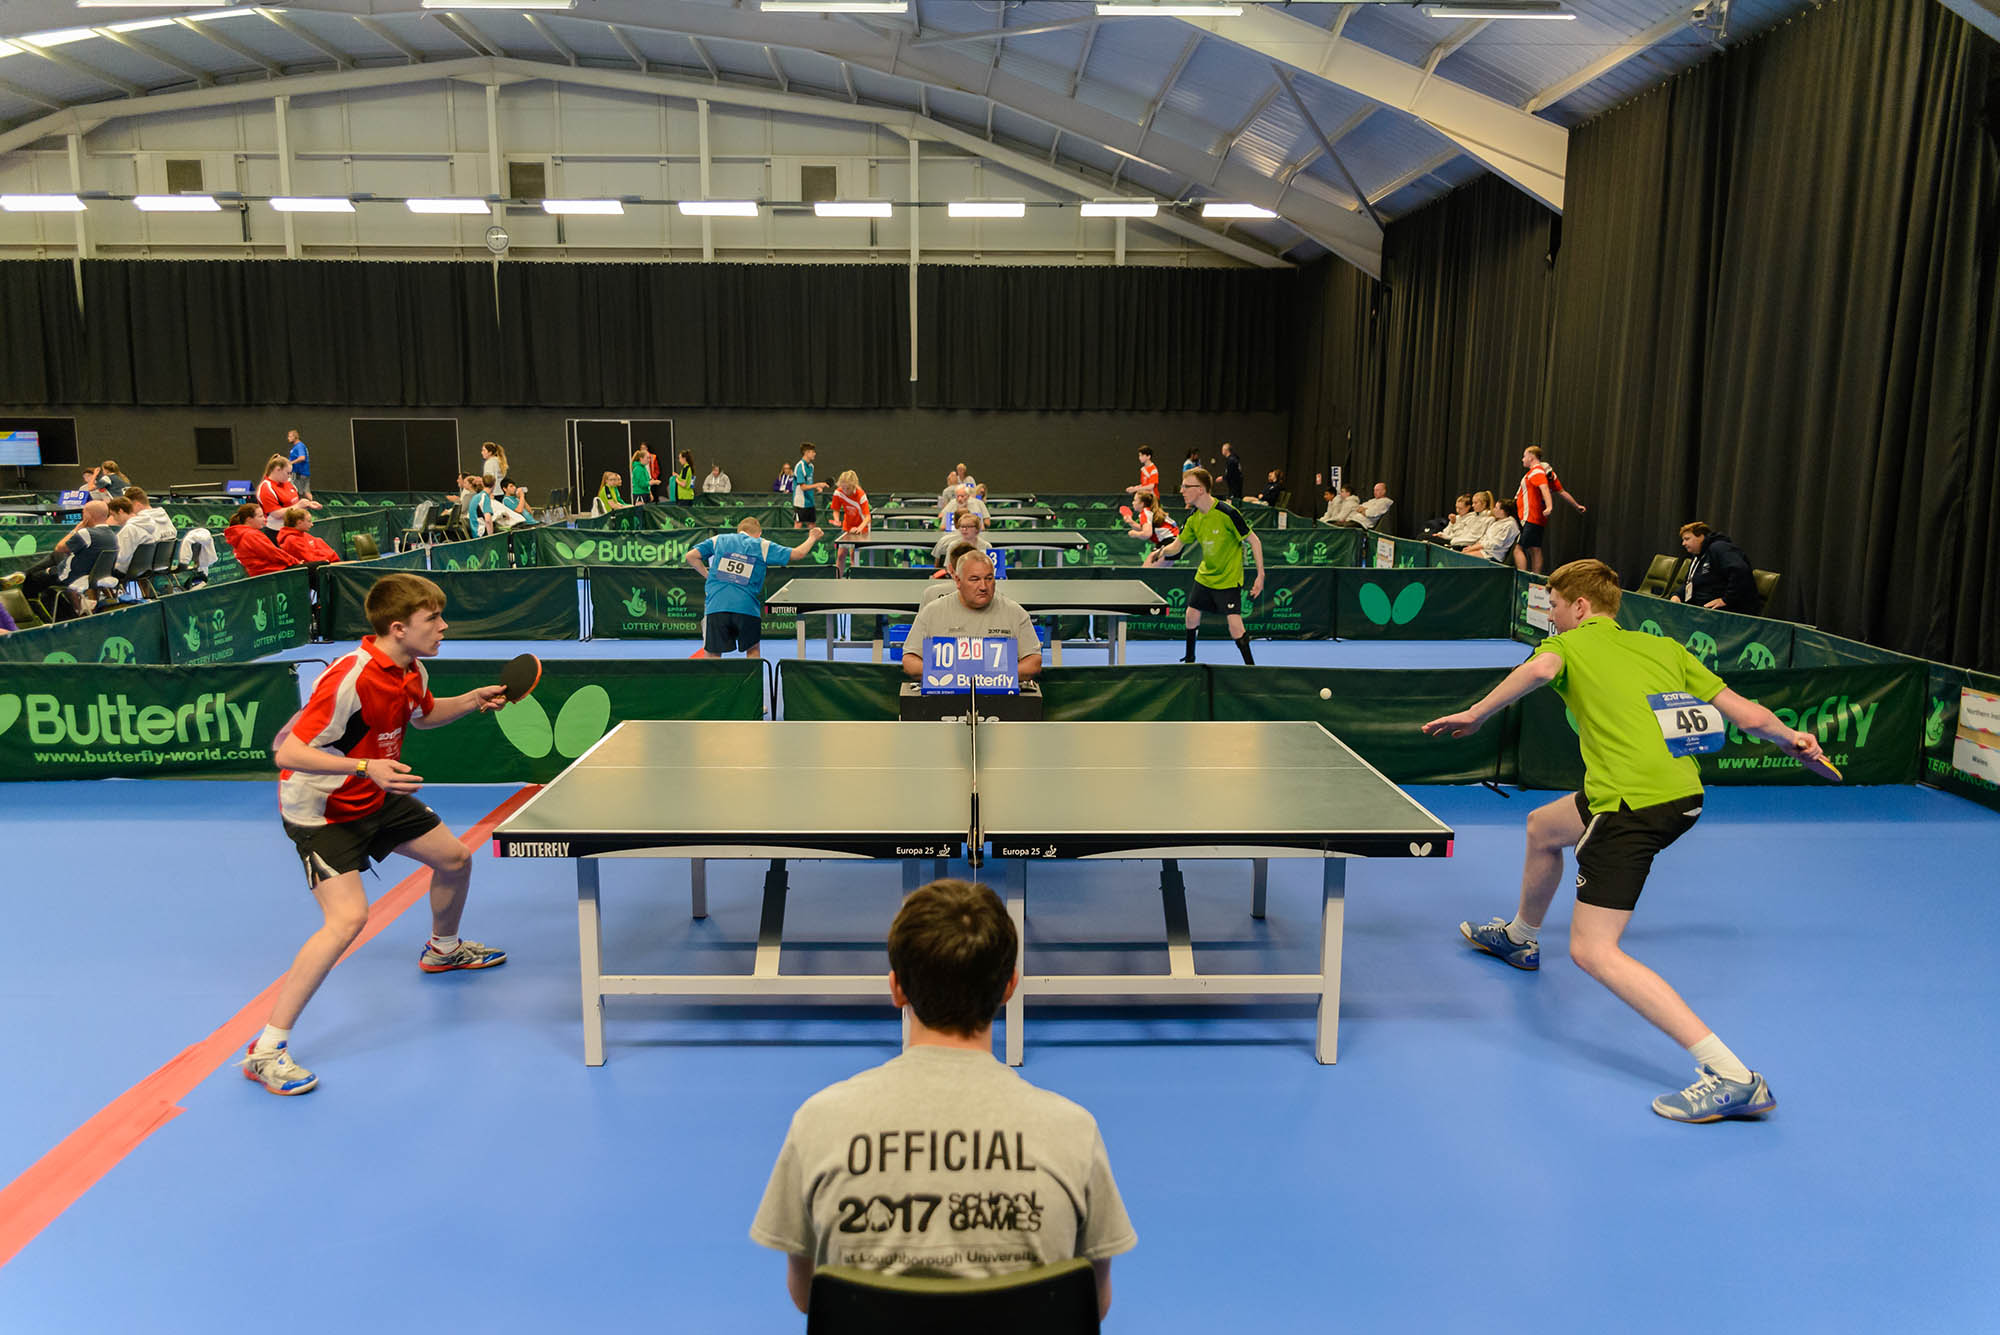 wide side view of table tennis matches taking place with two boys playing in foreground